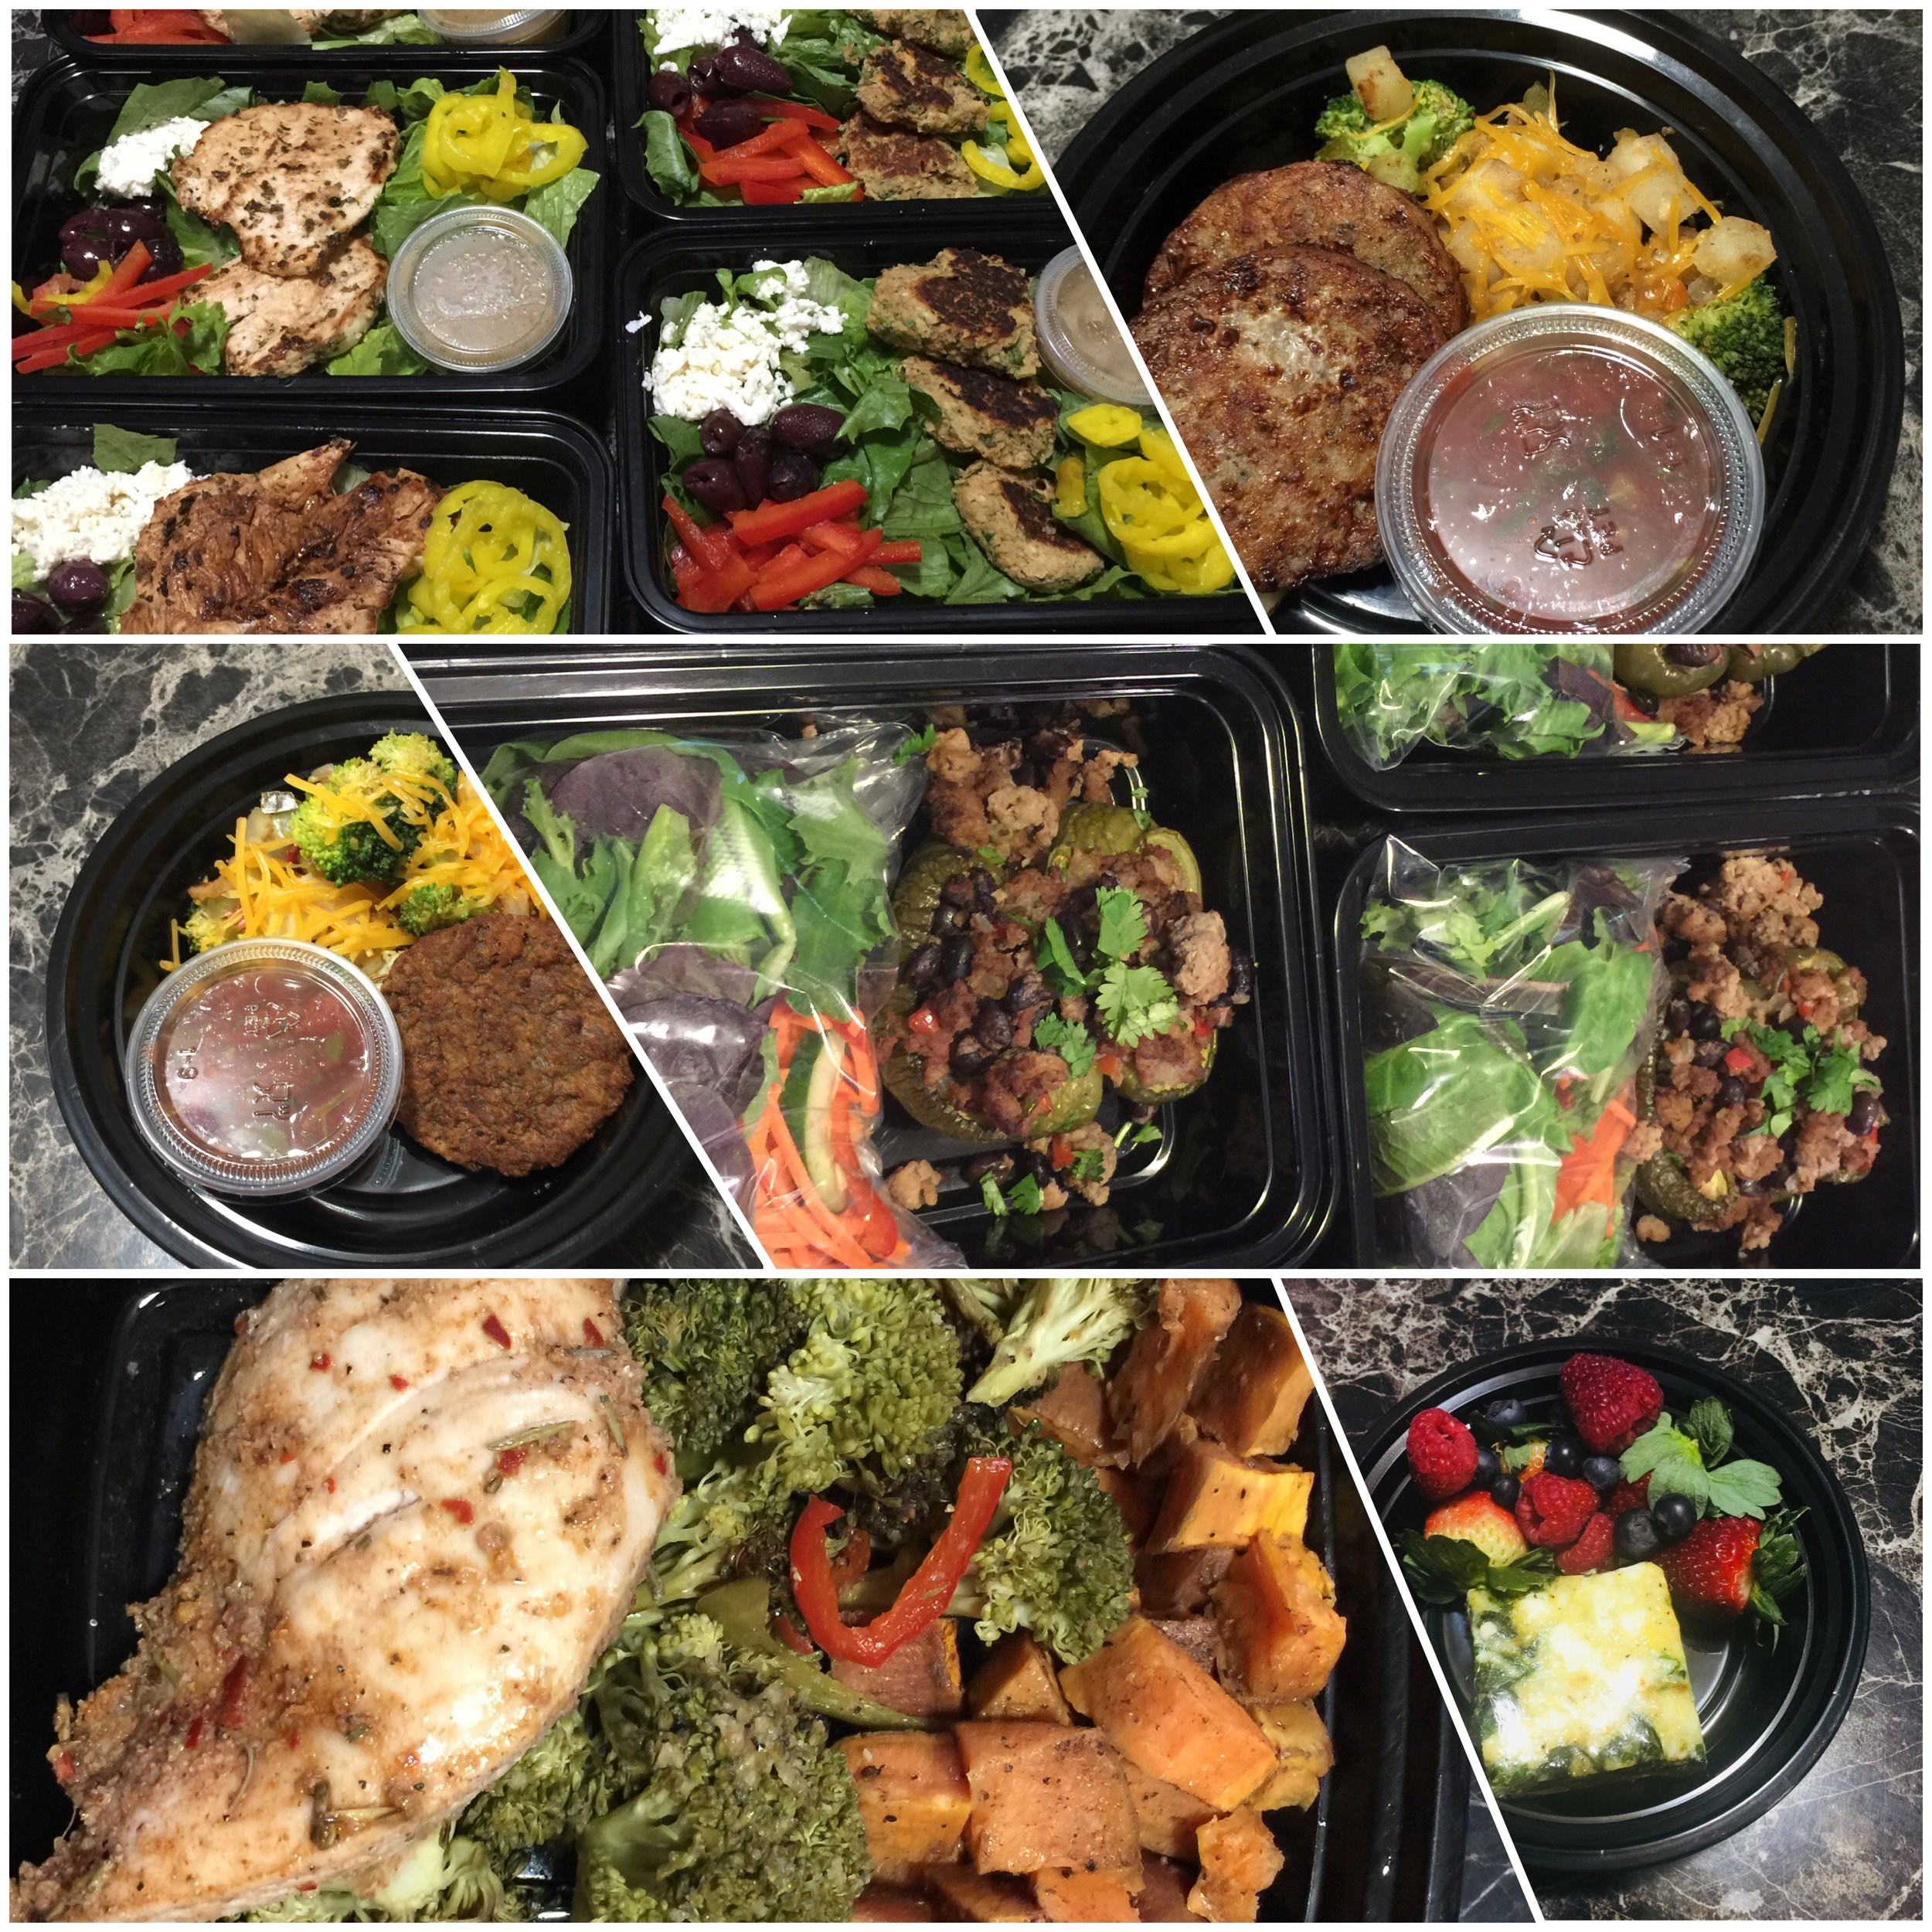 JNC BODIES 2019 Meal prep! - *Each package includes (5) of each meal type listed.BREAKFAST, LUNCH & DINNER $125.00BREAKFAST, LUNCH, DINNER & SMOOTHIE PACKS $150.00BREAKFAST & LUNCH/DINNER $75.00LUNCH & DINNER $95.00LUNCH/DINNER ONLY $55.00BREAKFAST ONLY $20.00Individual Meals:Breakfast/Smoothie Packs $4.00/eachLunch/Dinner Meals $8.50/eachSnacks $5.00/each